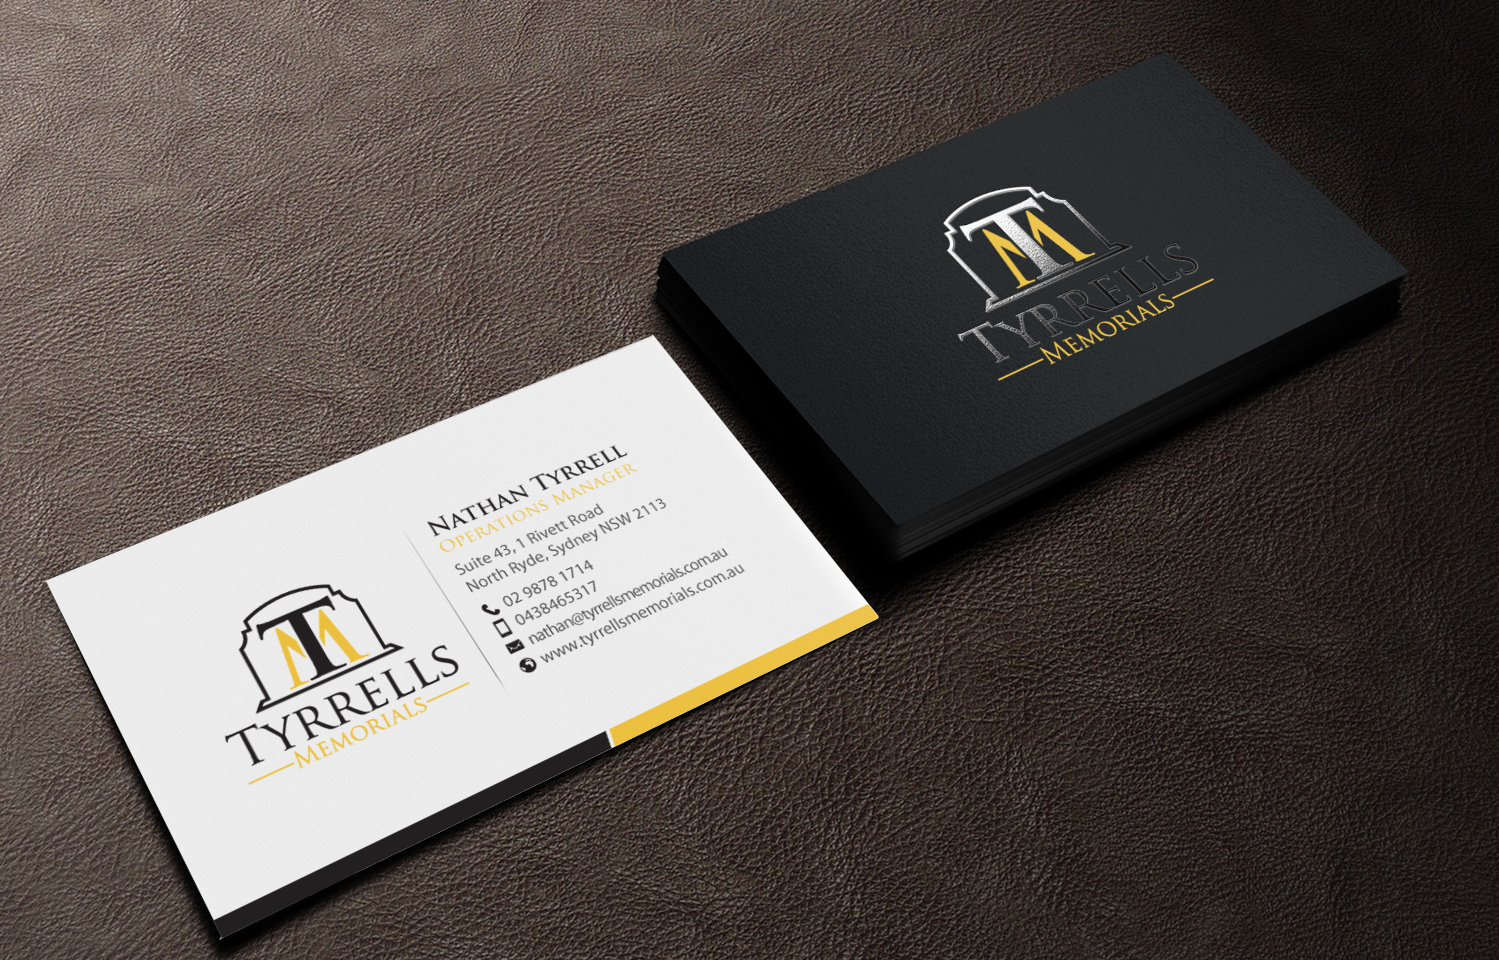 Serious professional business business card design for tyrrells business card design by chandrayaaneative for tyrrells memorials design 12677204 reheart Image collections